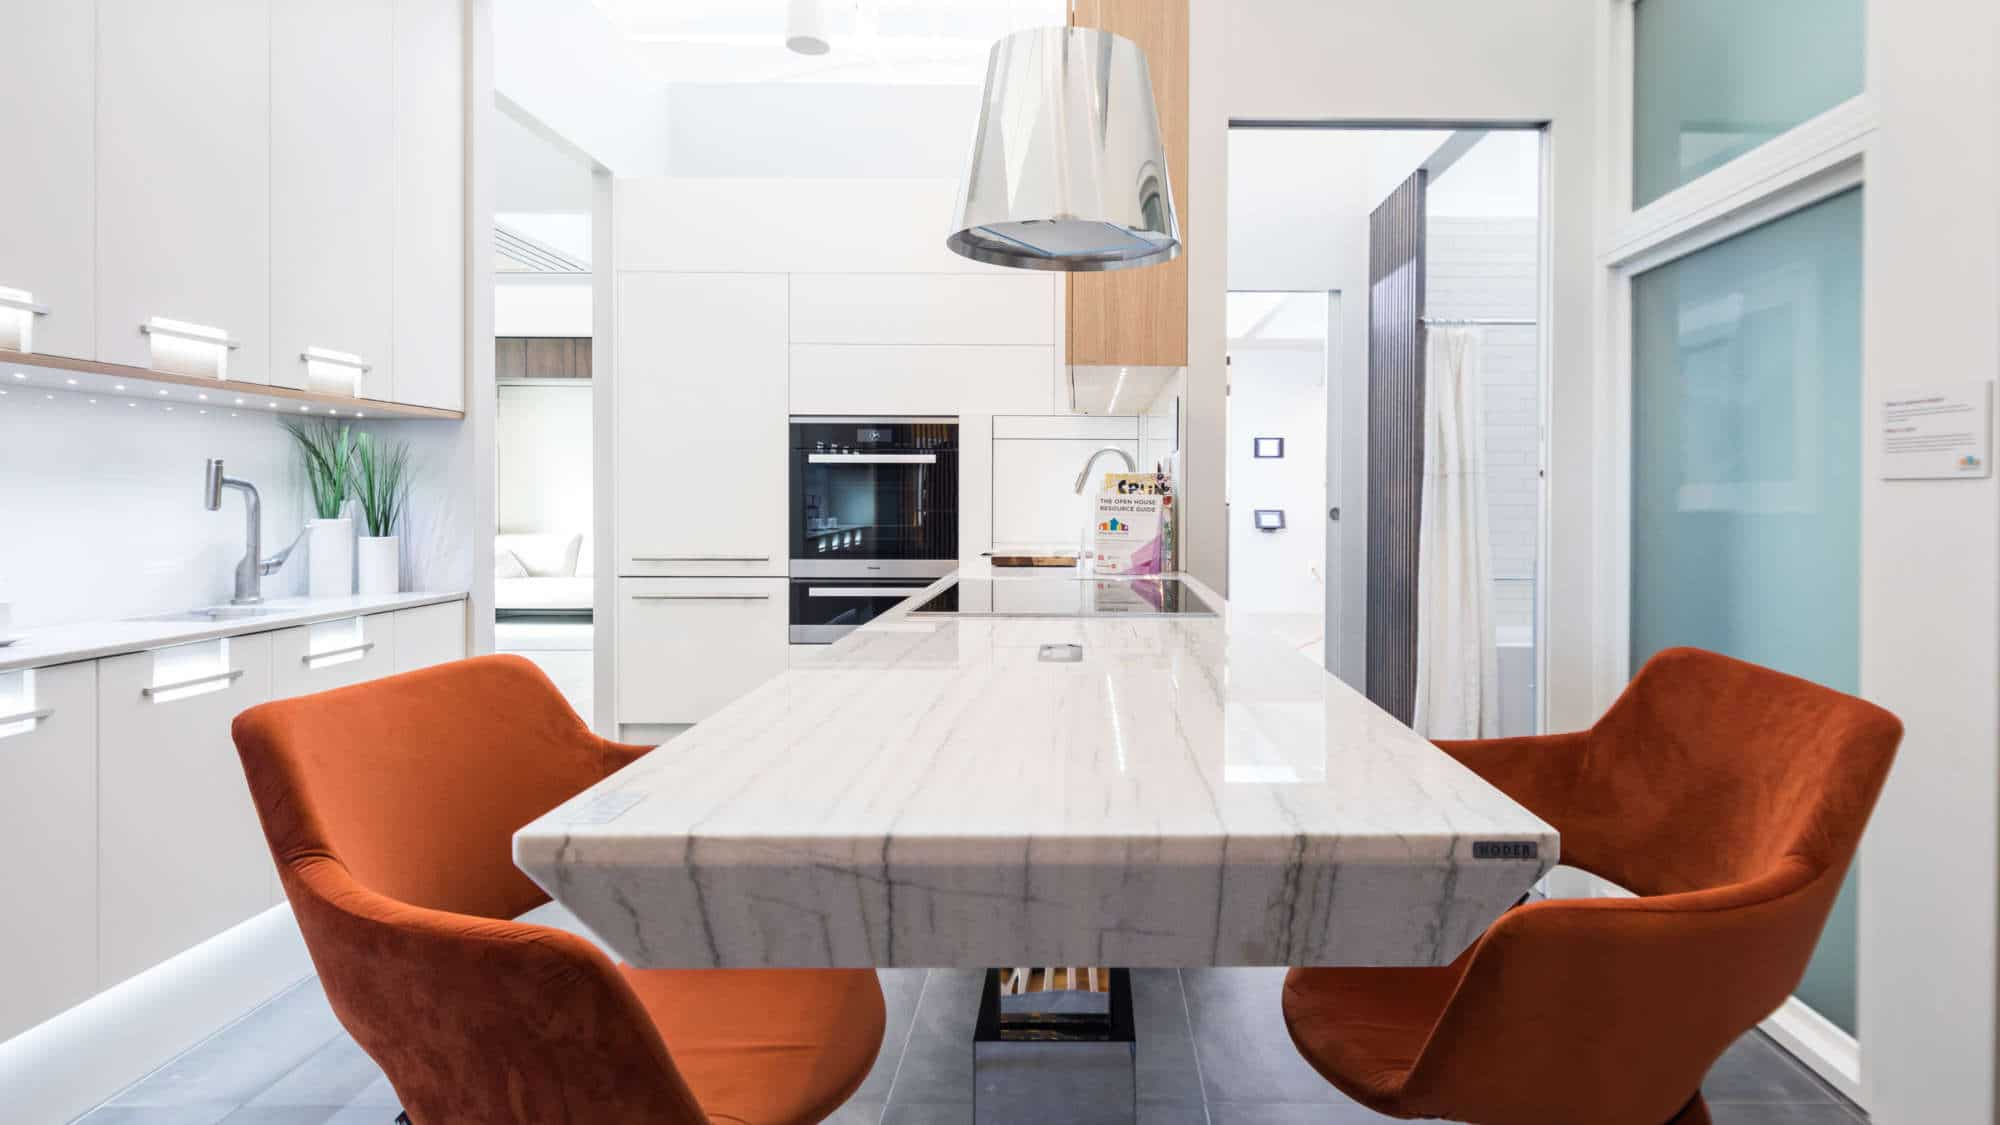 WTOP   Moving walls, kitchen in a box: Functional design to ...